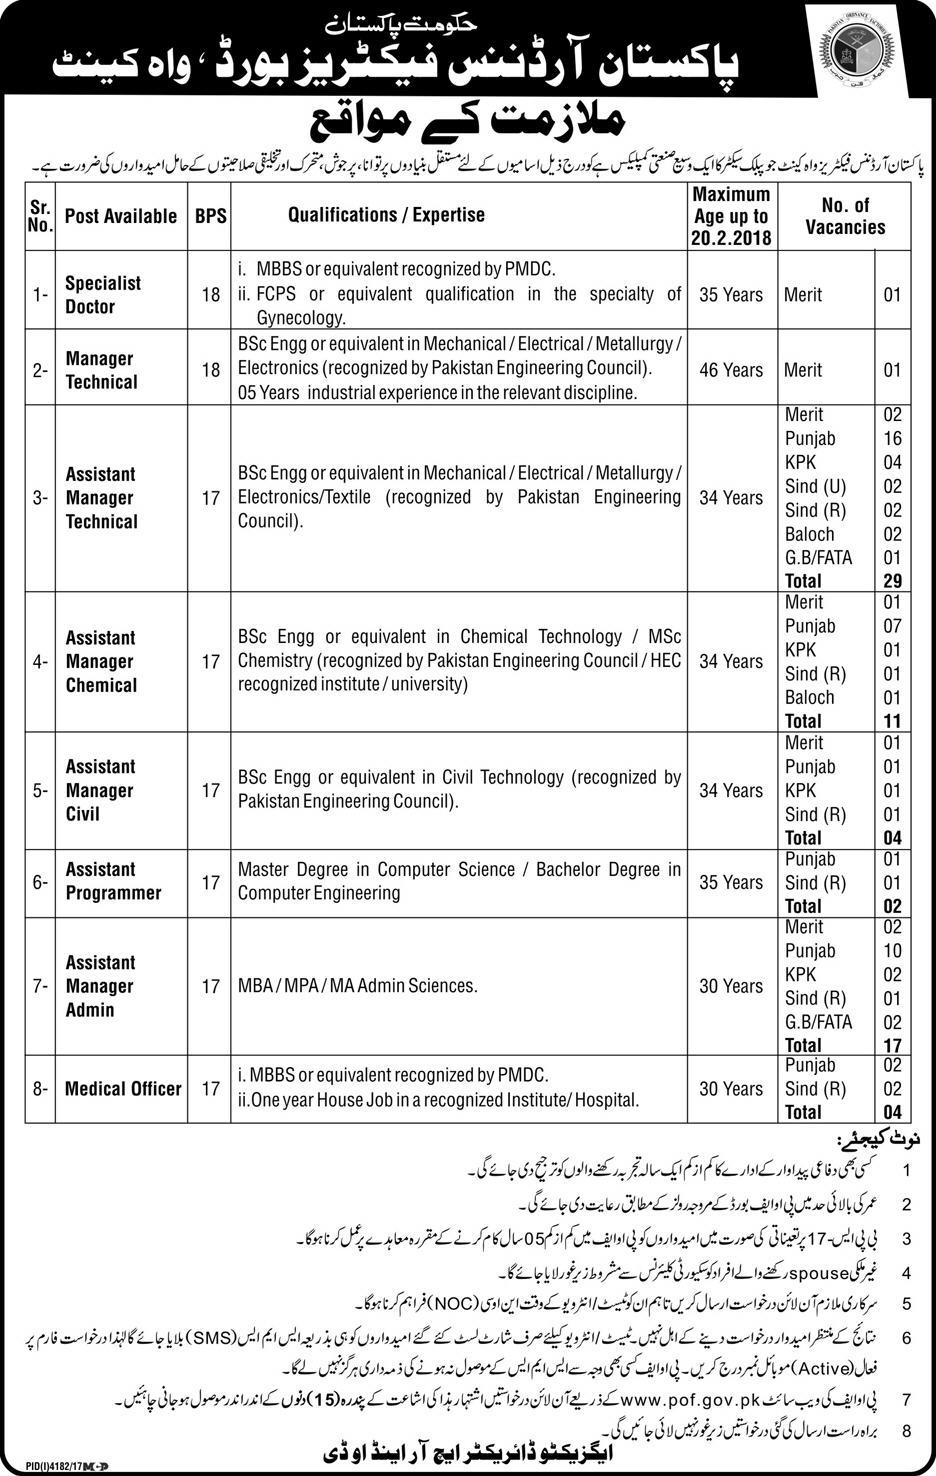 Pakistan Ordinance Factories Board (Wah Cant) 69 Jobs 06 February 2018 Daily Express Newspaper